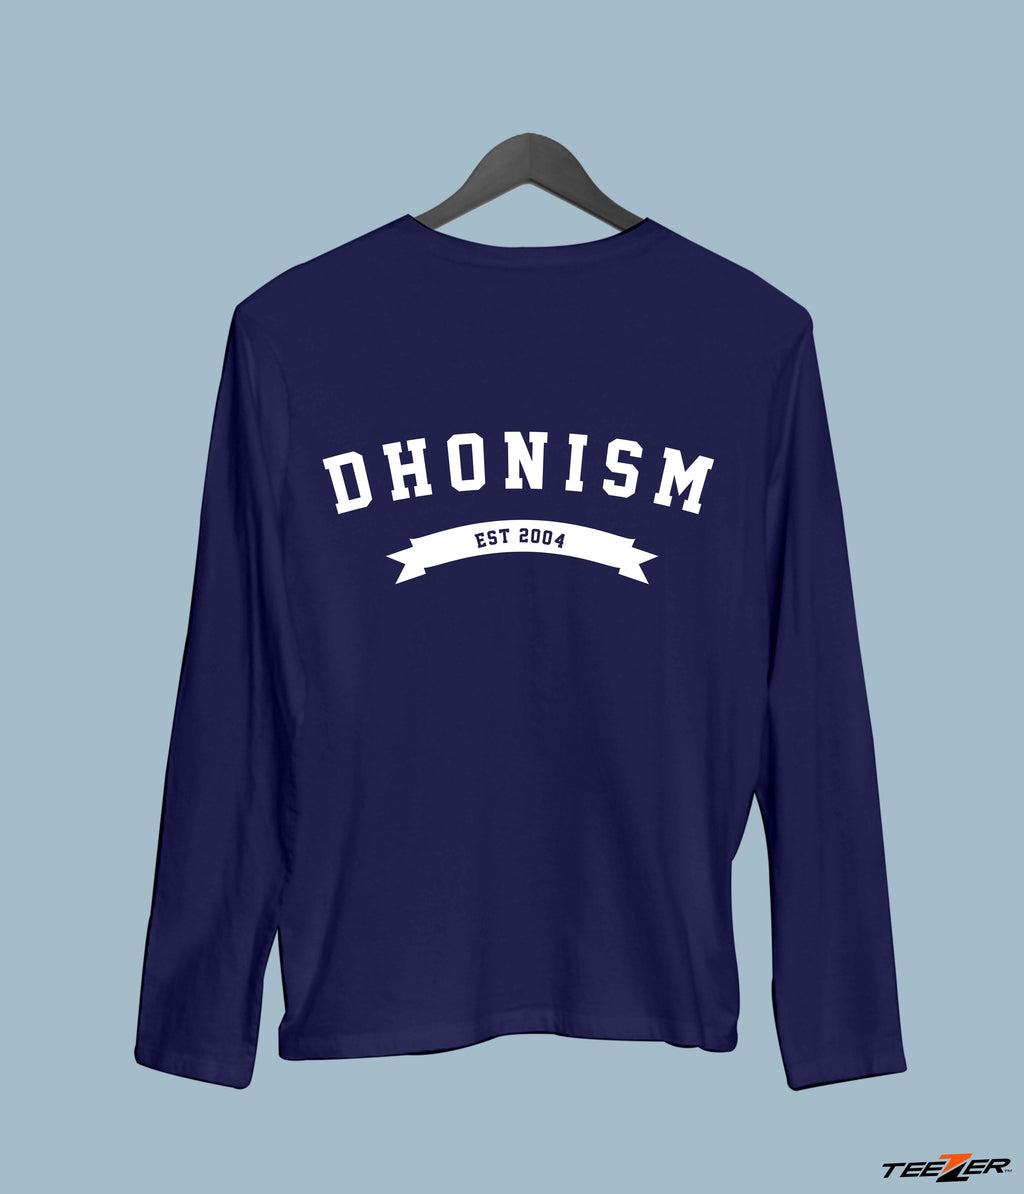 Dhonism - F/S